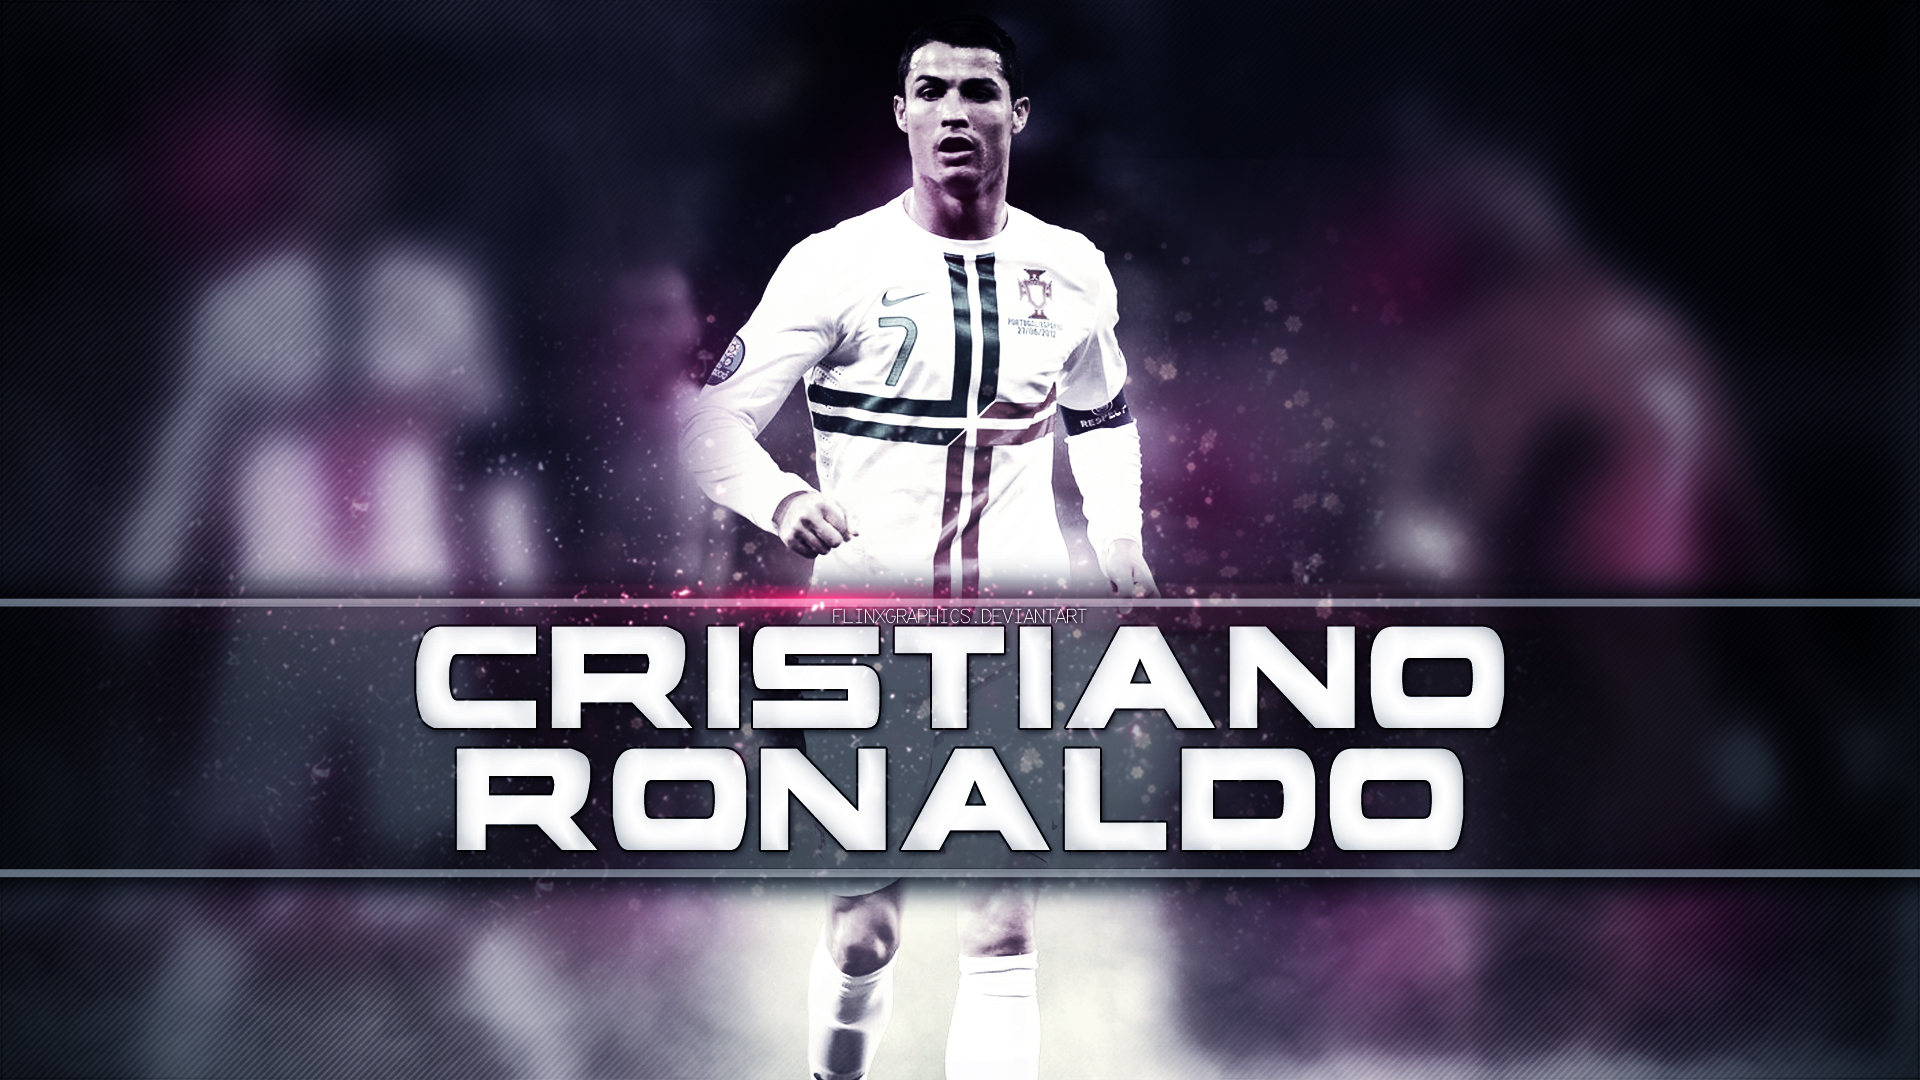 Cristiano Ronaldo Wallpapers HD purple background